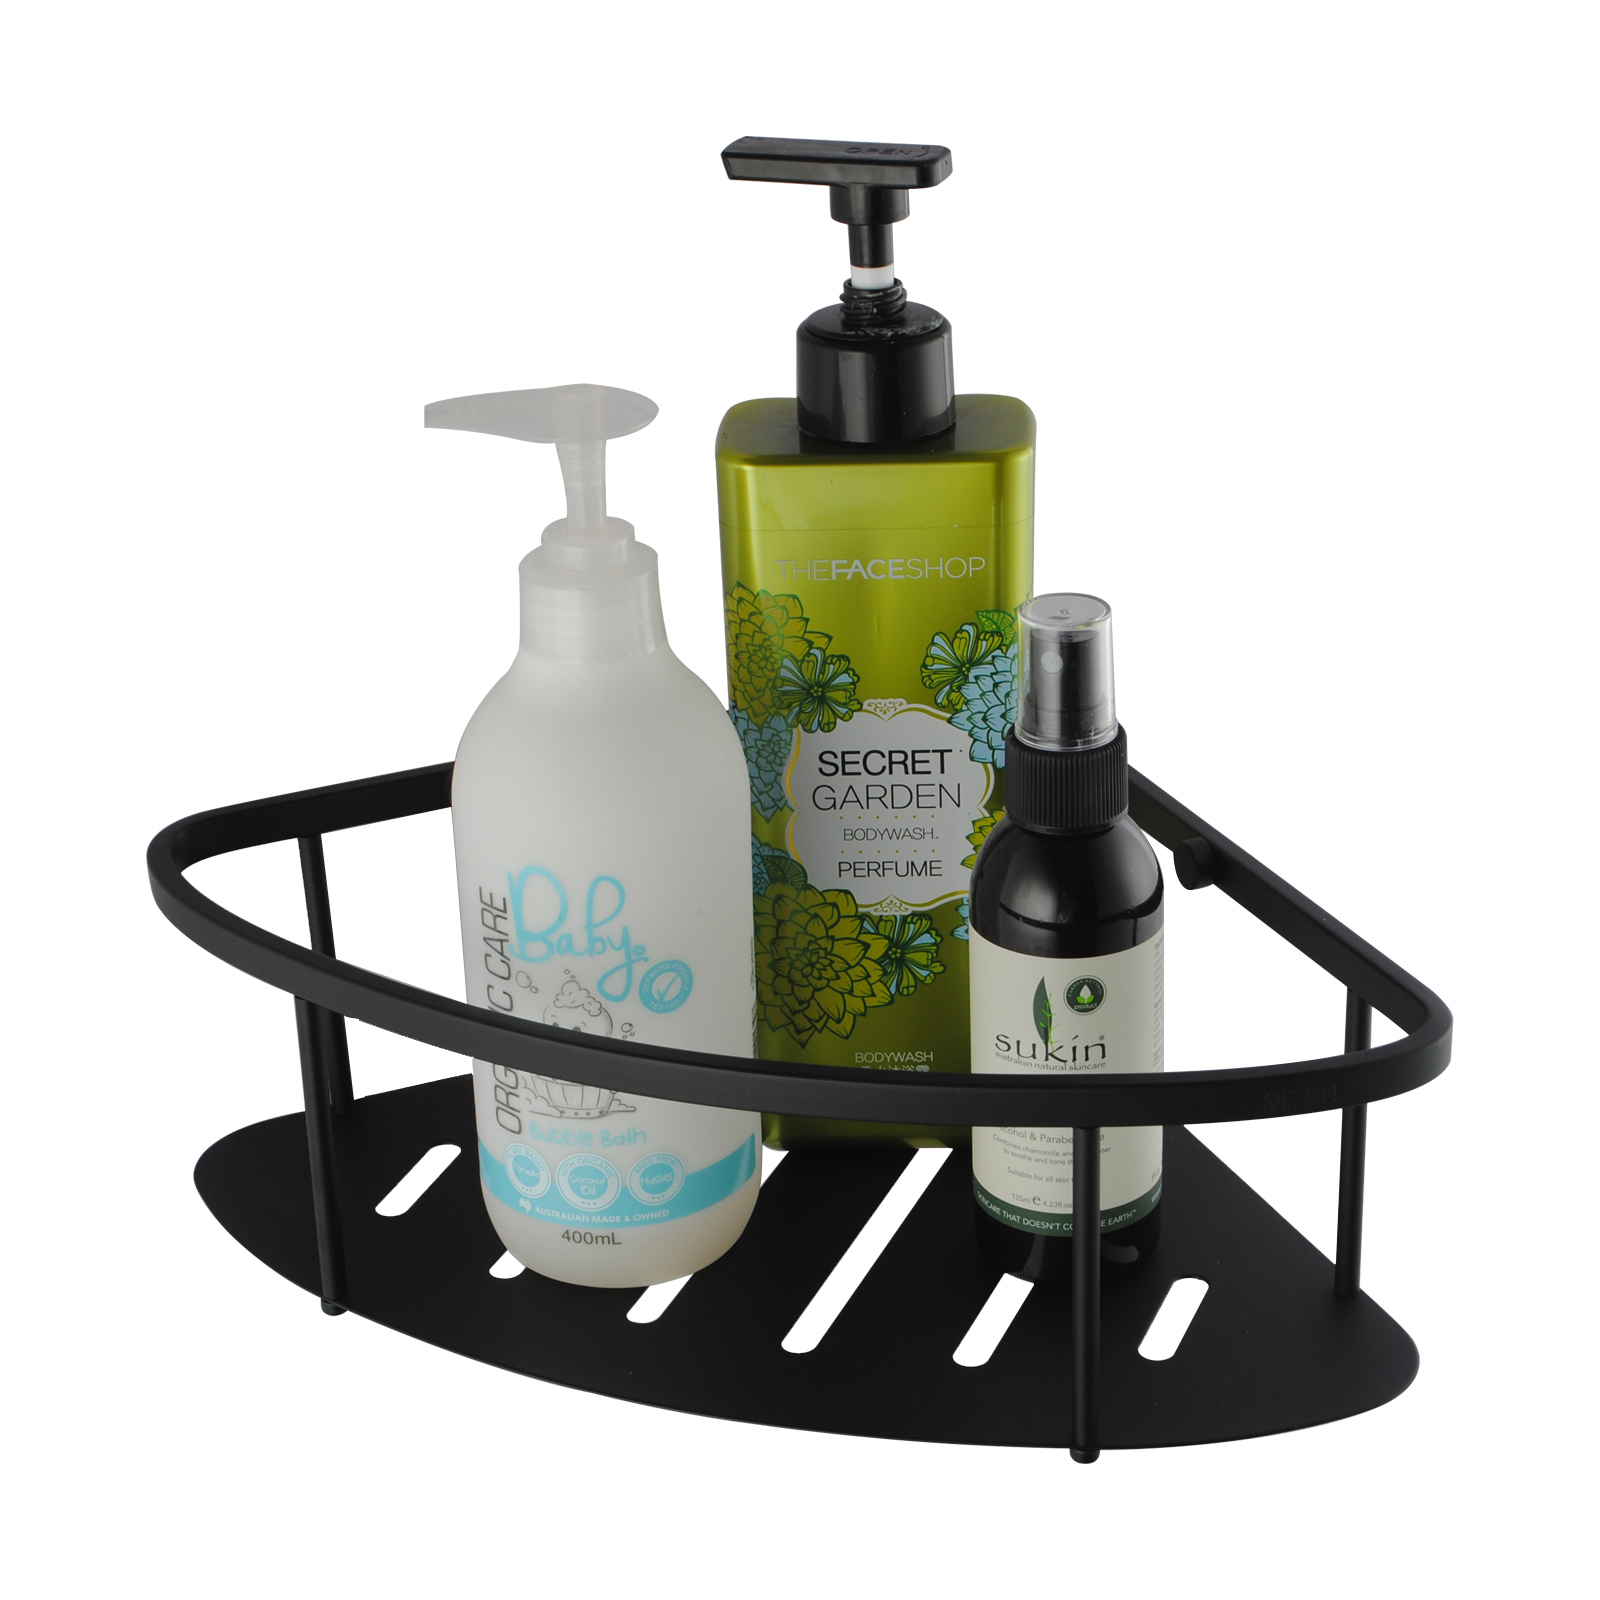 Matte Black Stainless Steel Shower Caddy Shelf | Buy Shower & Bath ...